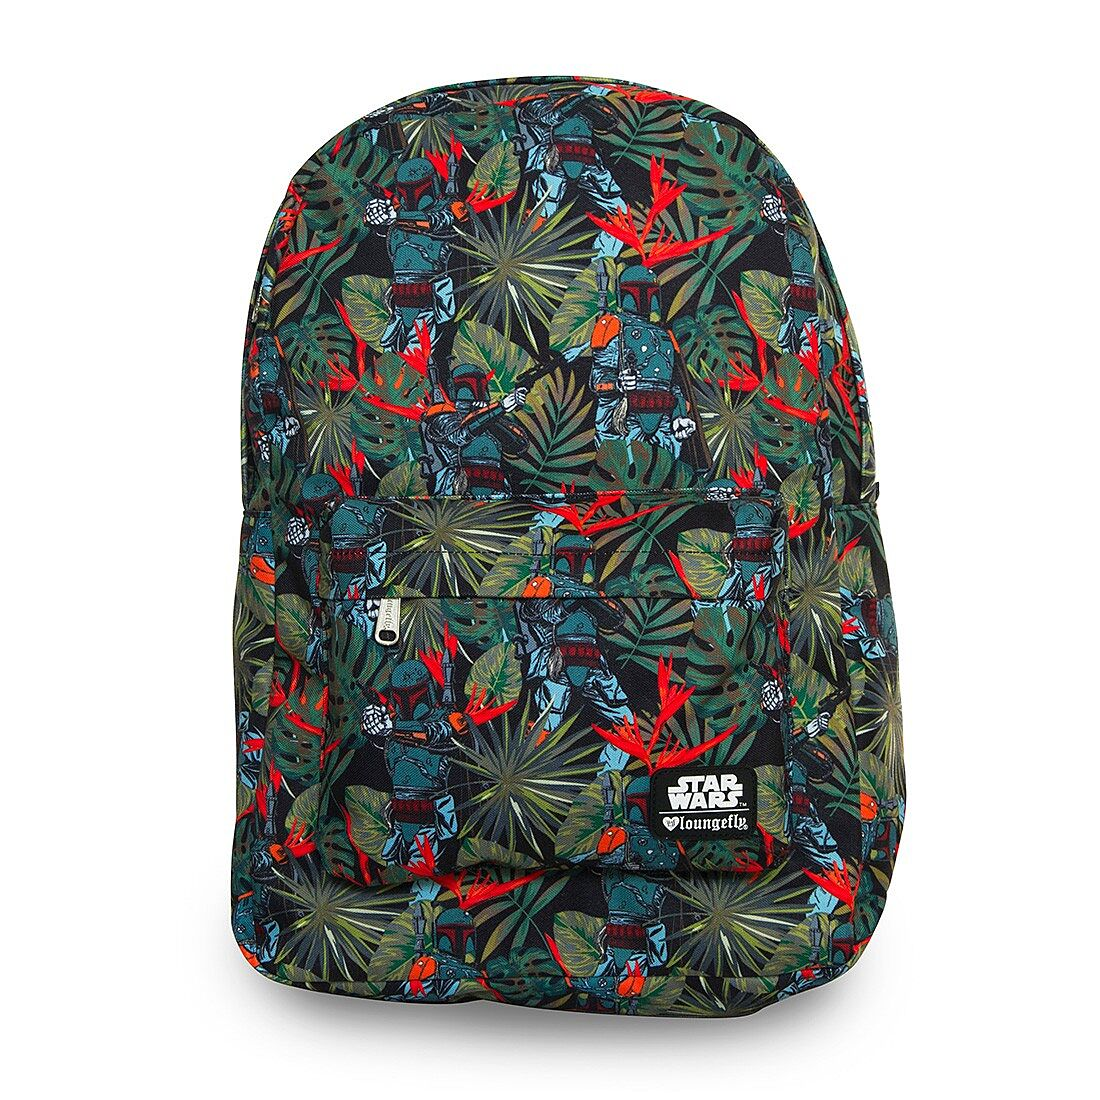 352e191759d New Star Wars backpacks from Loungefly are perfect for everyday use